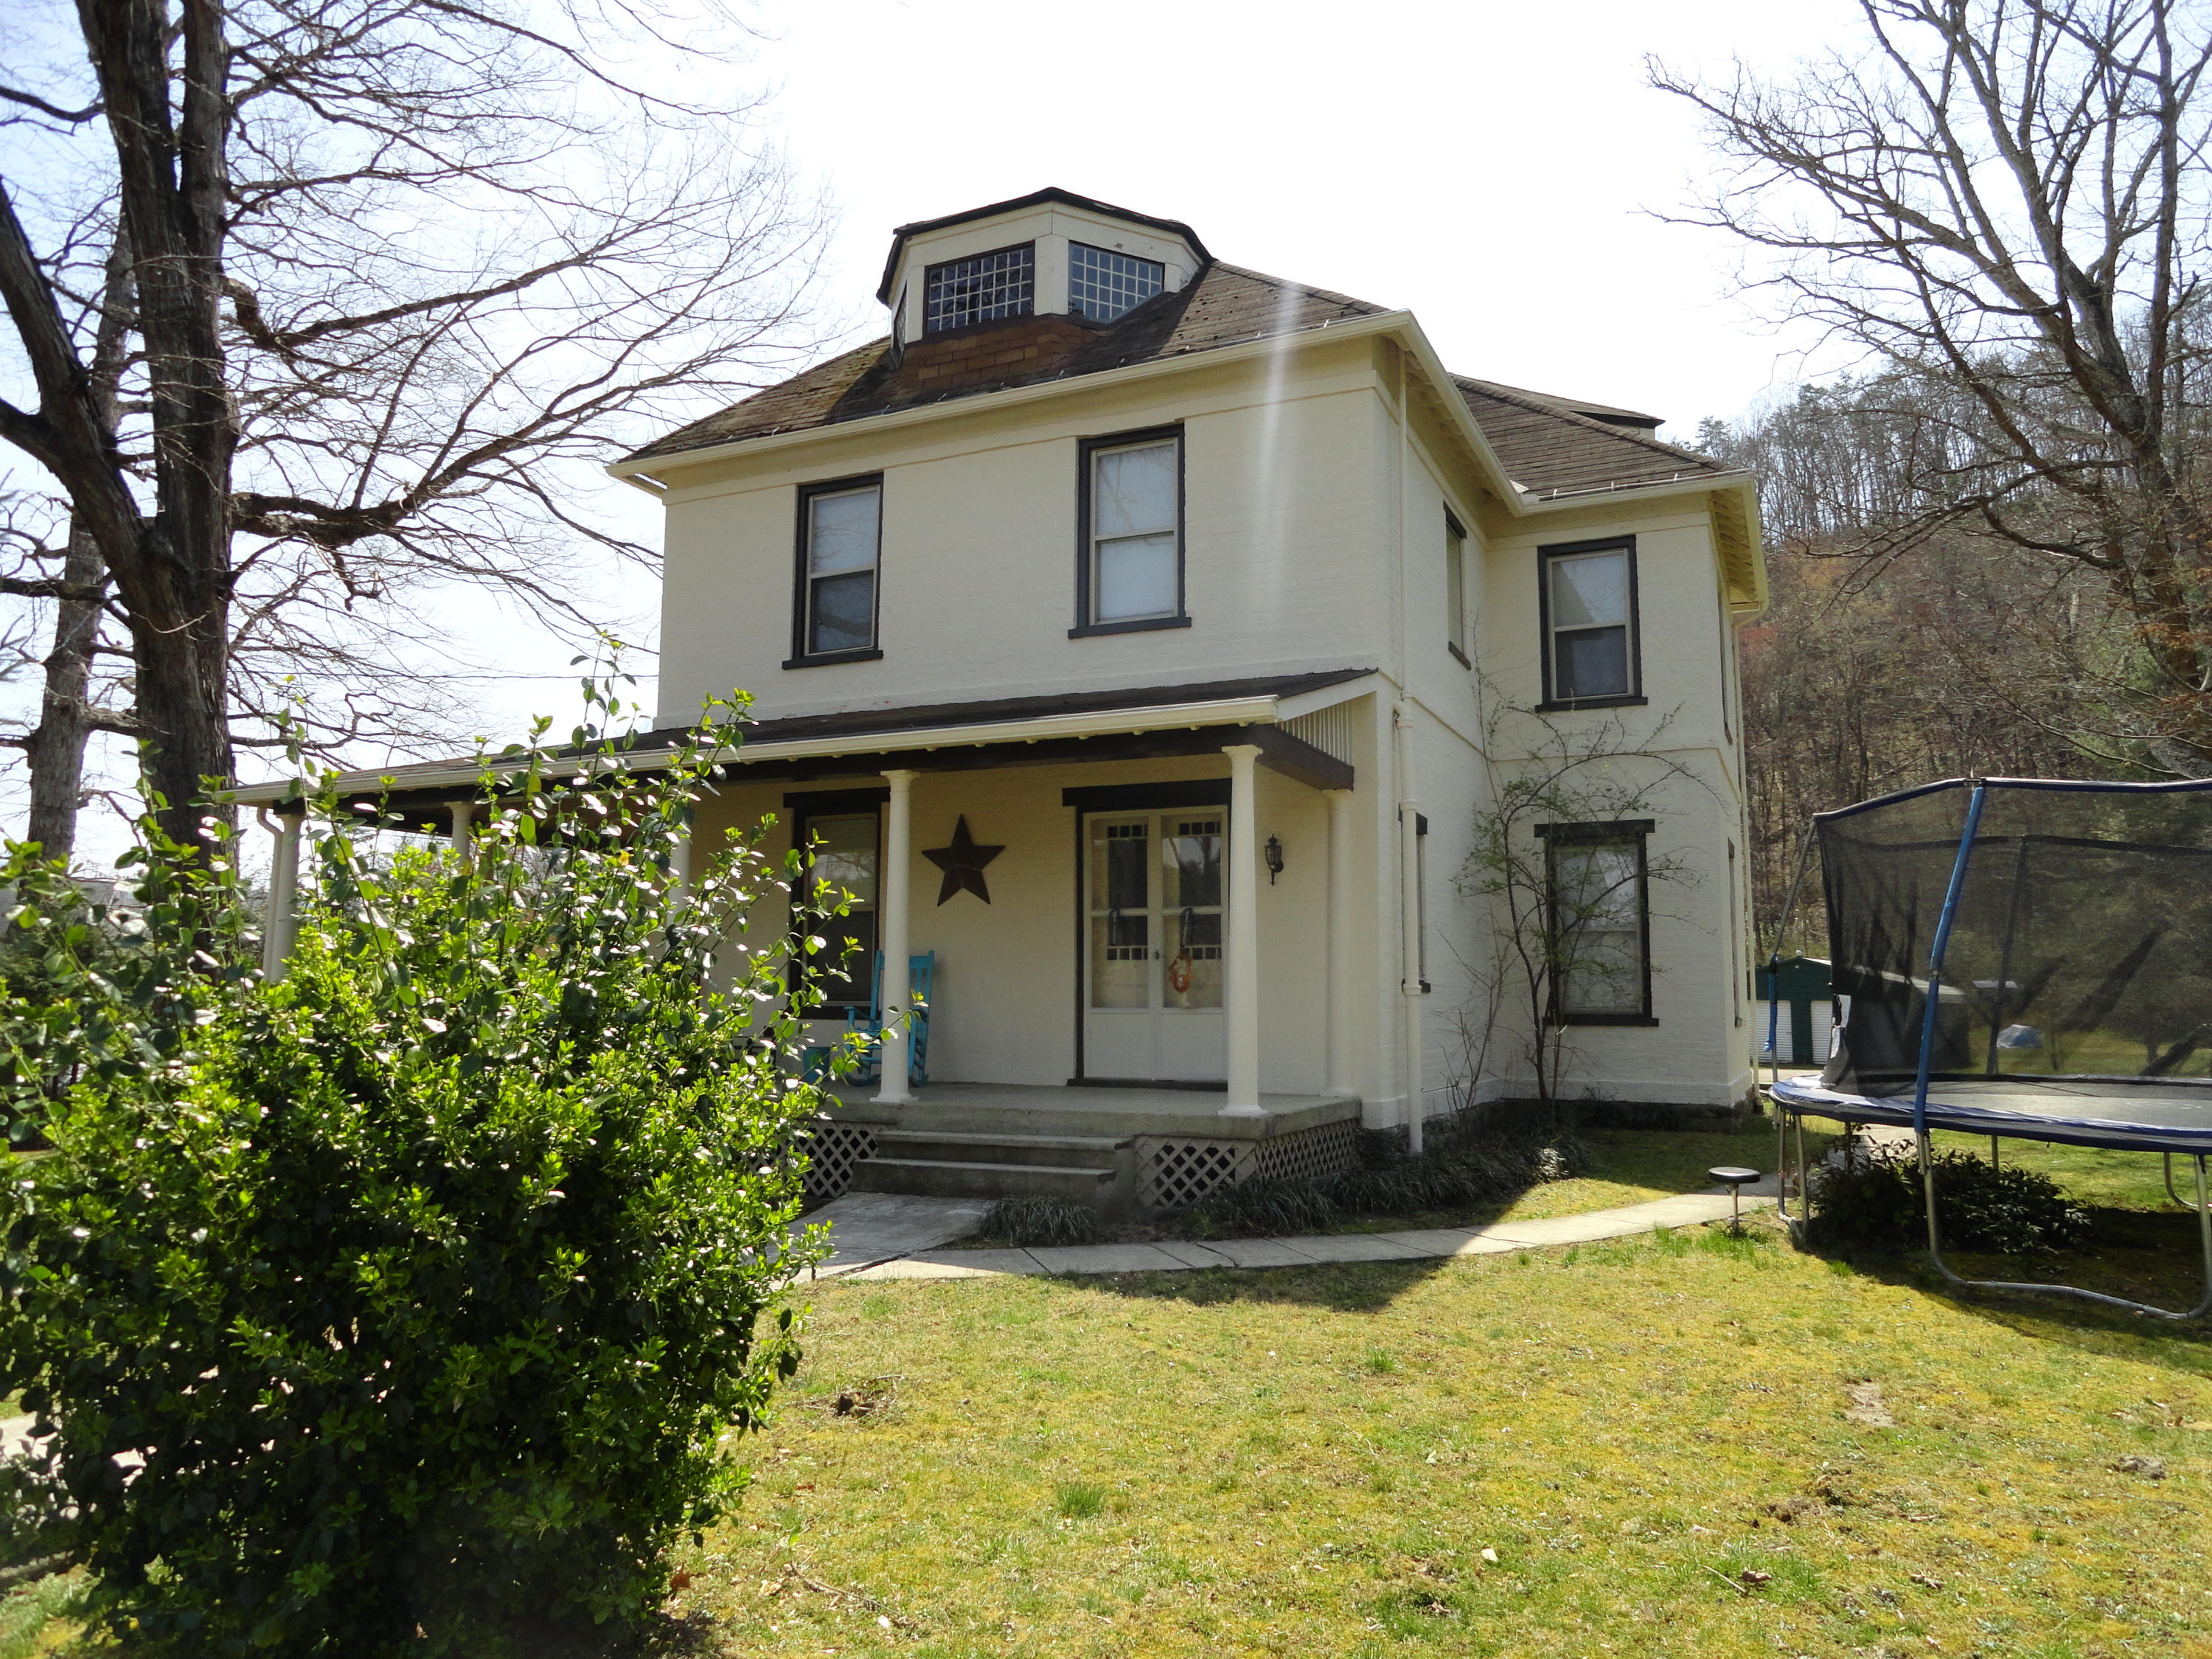 Photo of 616 James River View Clifton Forge VA 24422